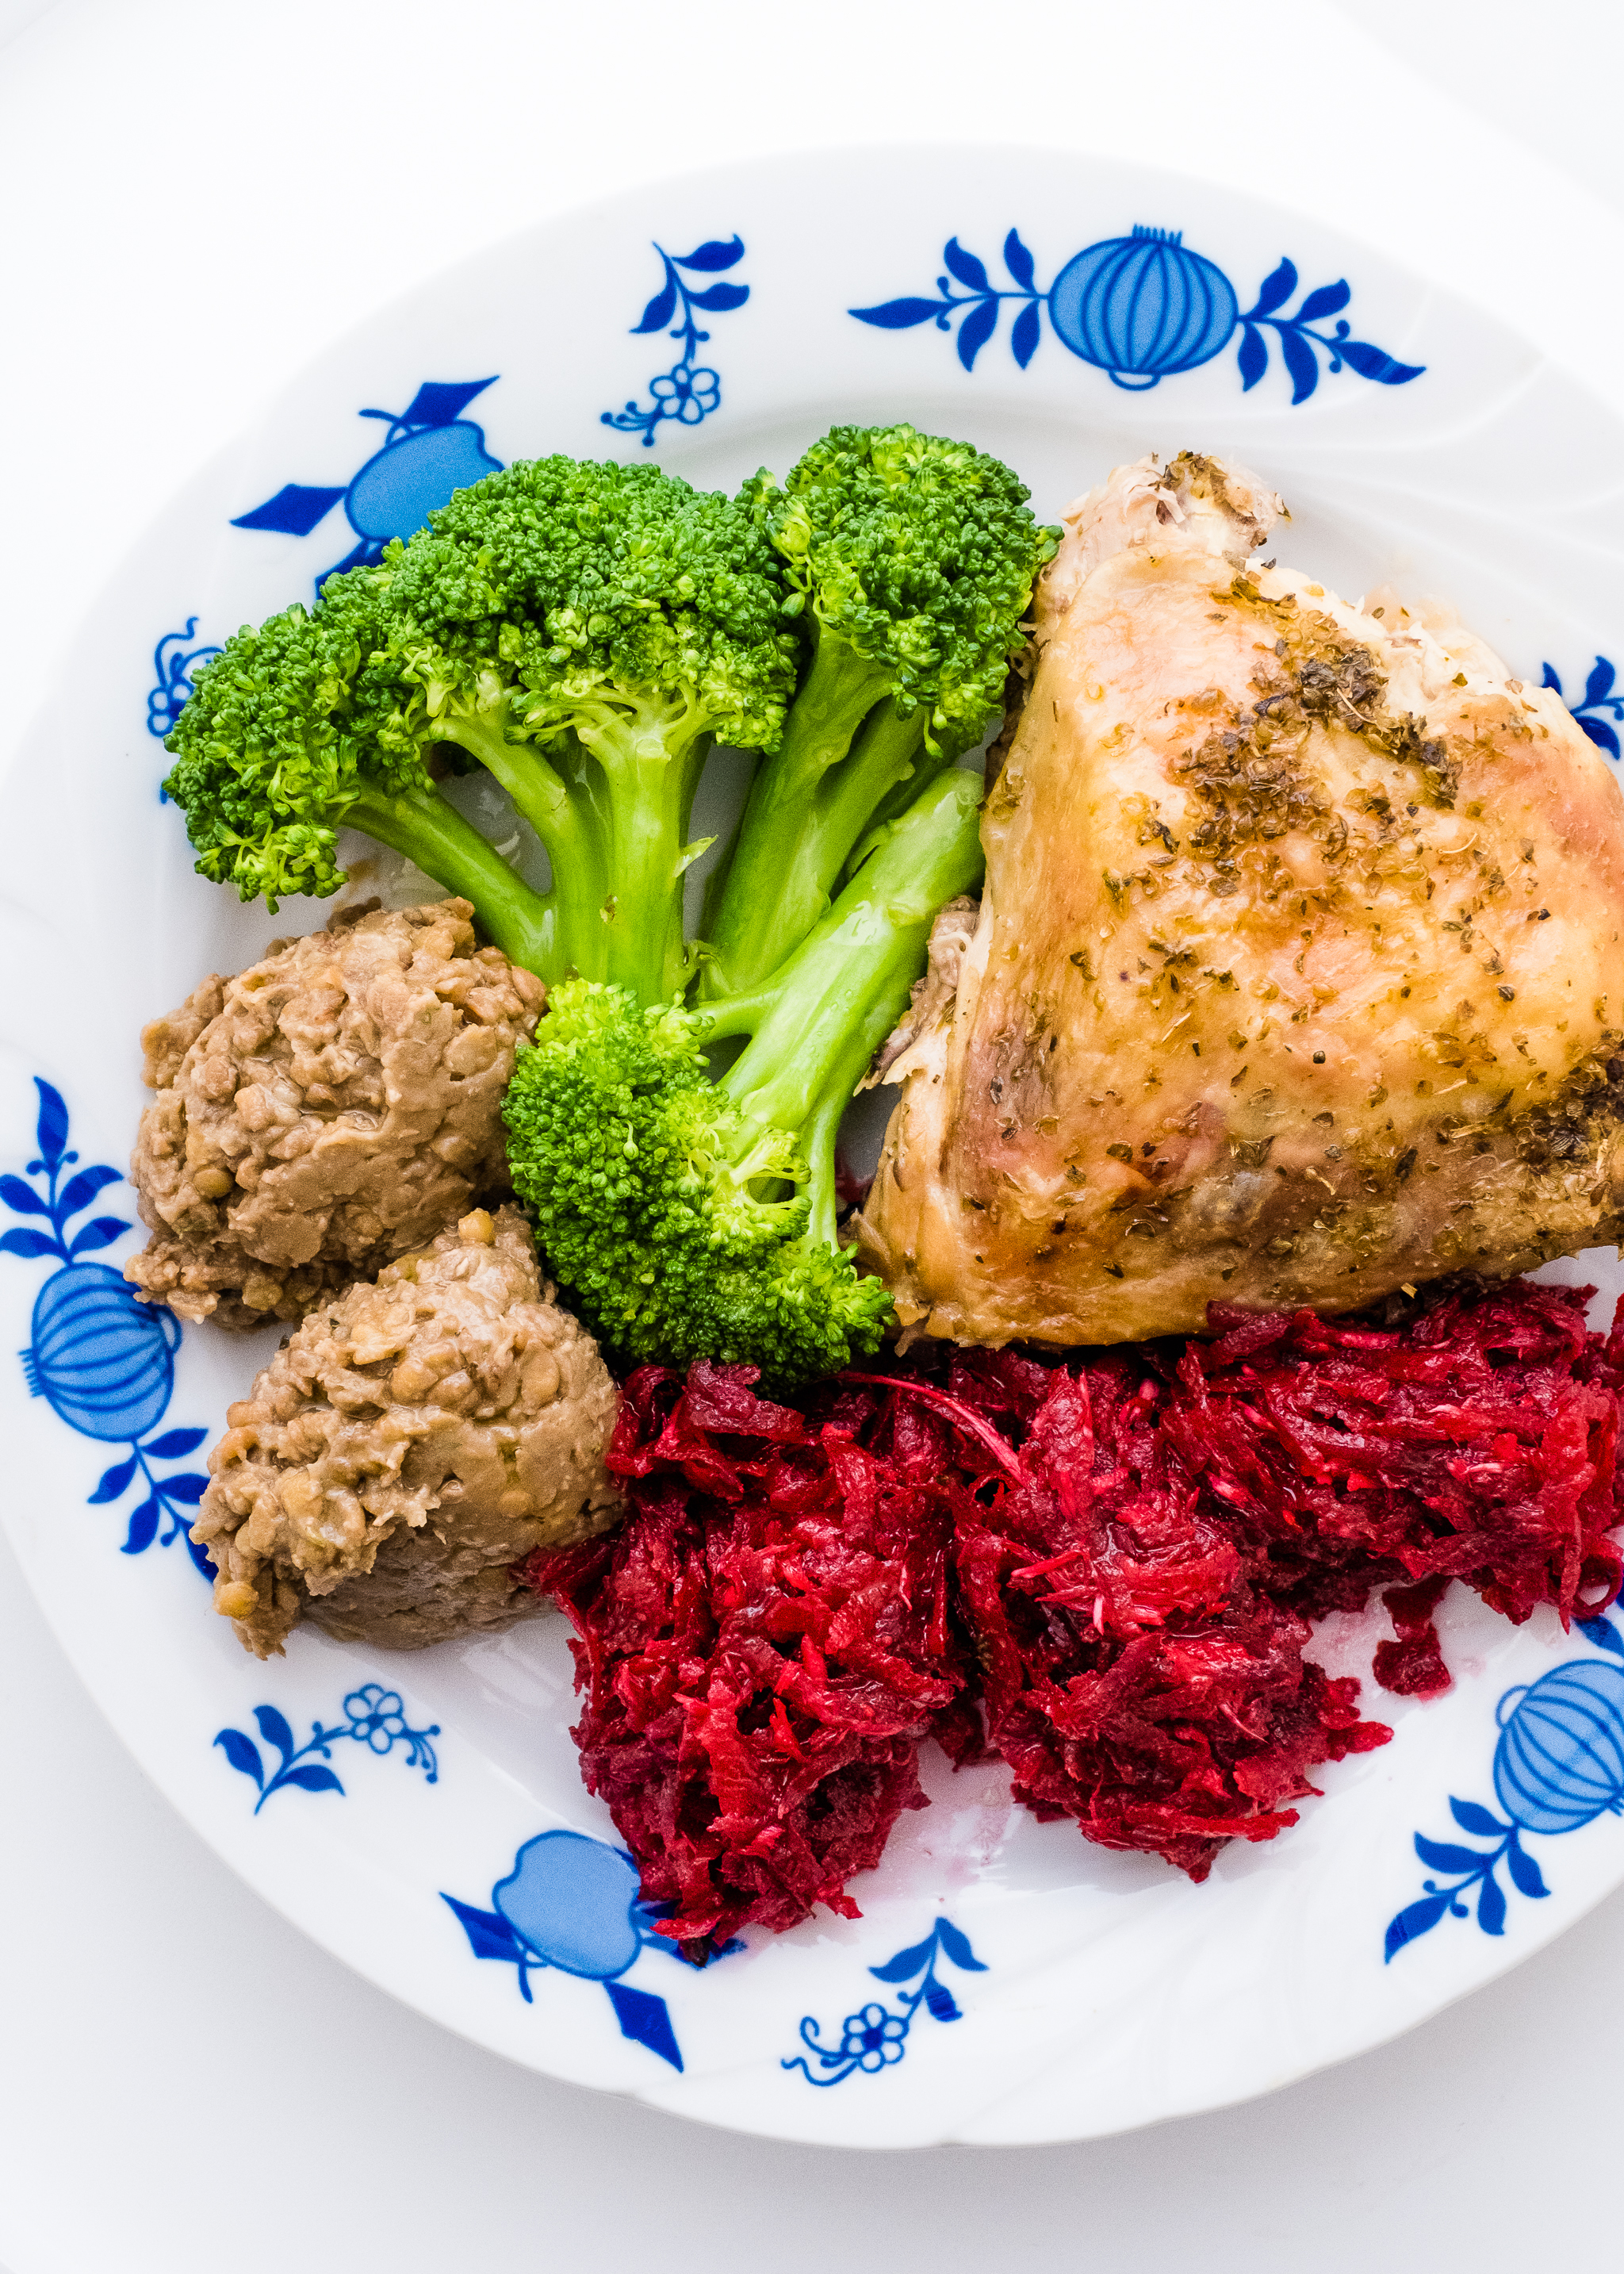 Beetroot and horseradish side salad with lentil hummus, broccoli and baked chicken